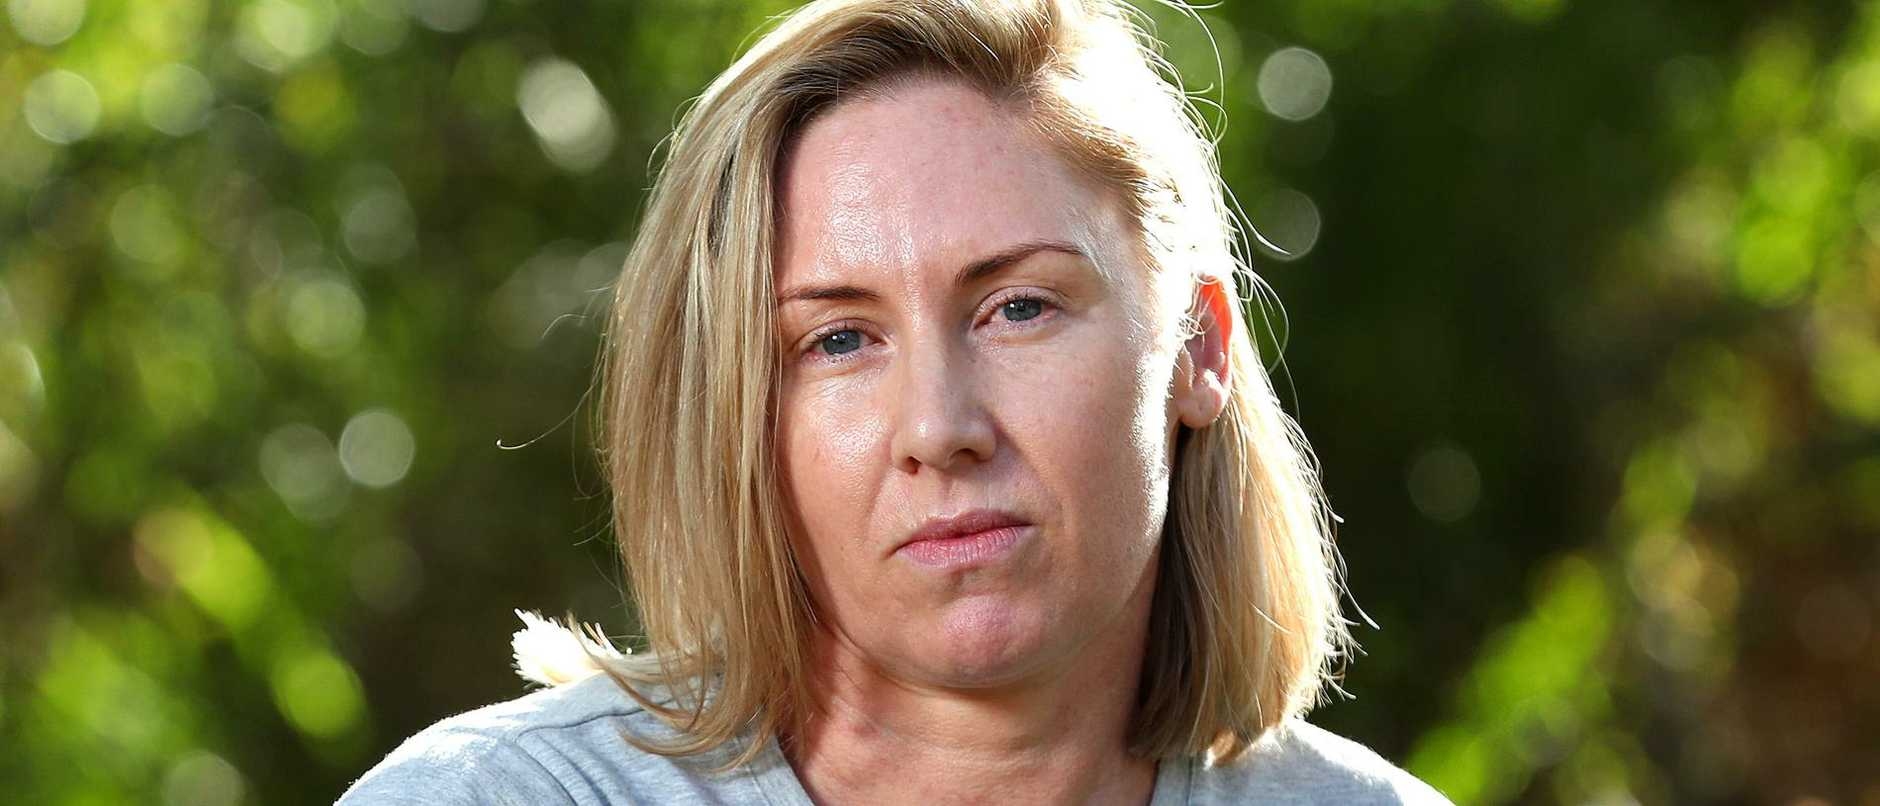 Sarah Connolly is being pursued through the Brisbane Magistrates Court by St Joseph's College Gregory Terrace, which is seeking $17,942 in fees plus legal costs related to her eldest son, who graduated last year.